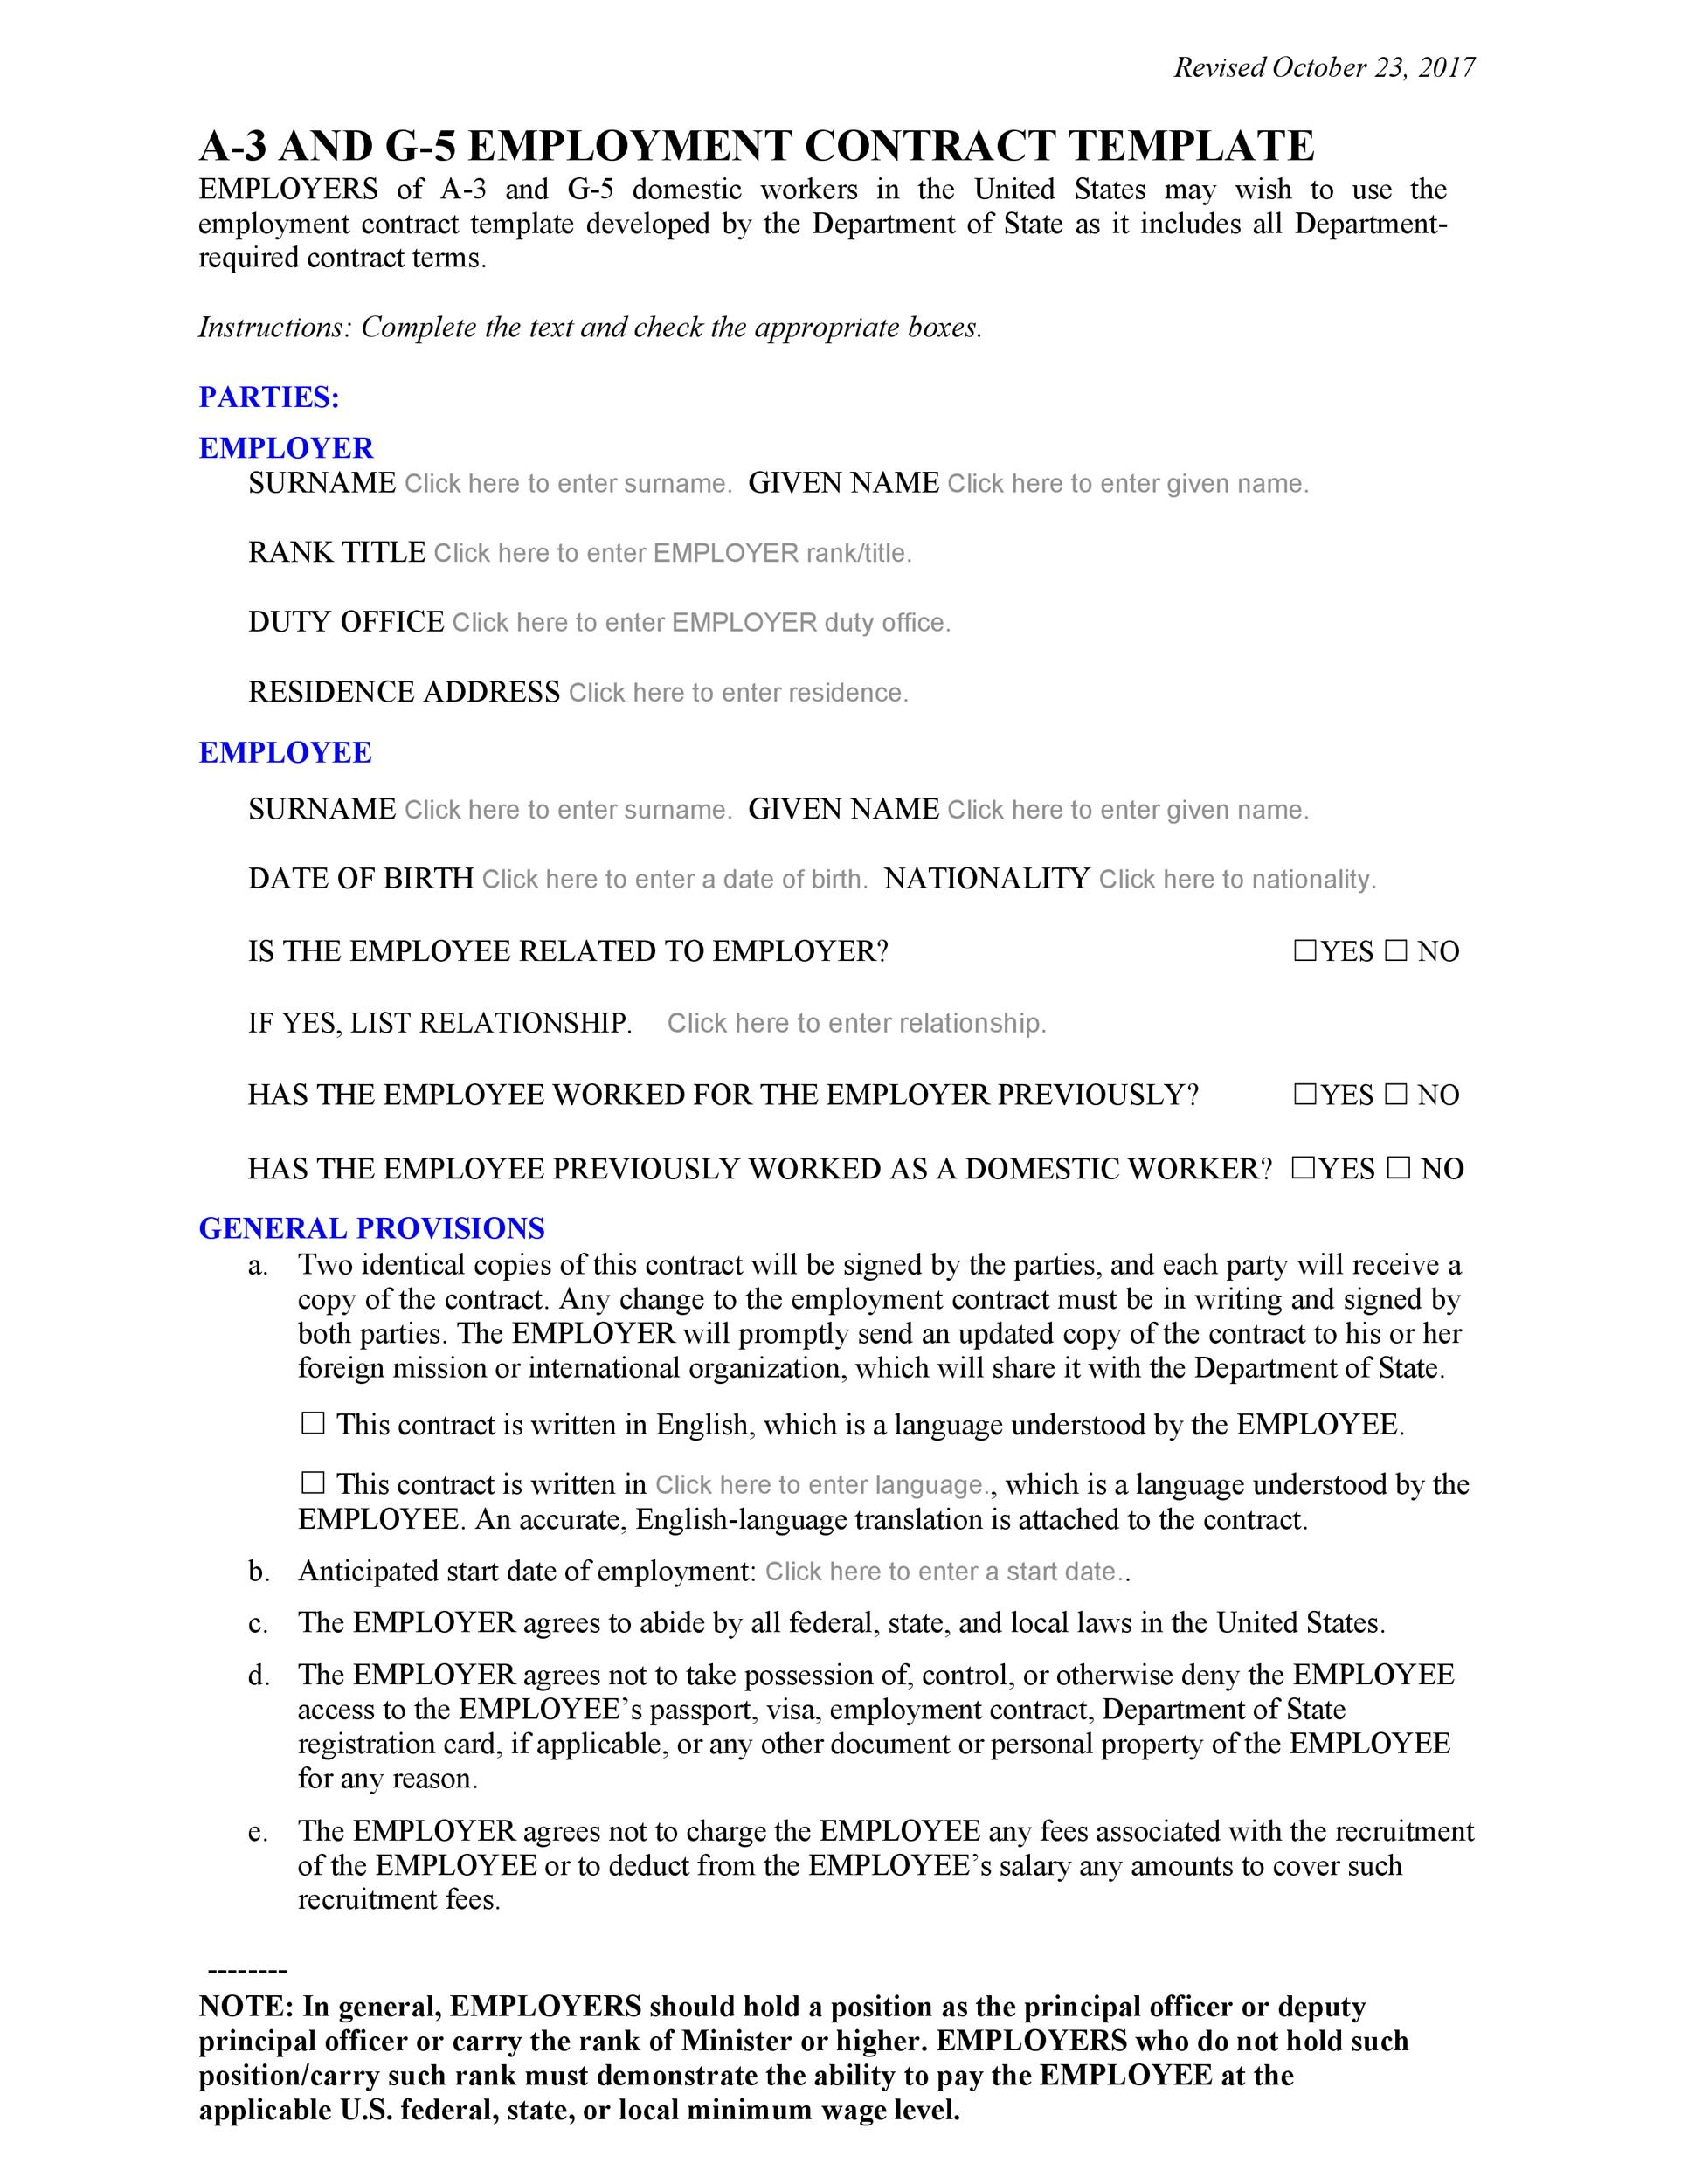 Free employment contract 04